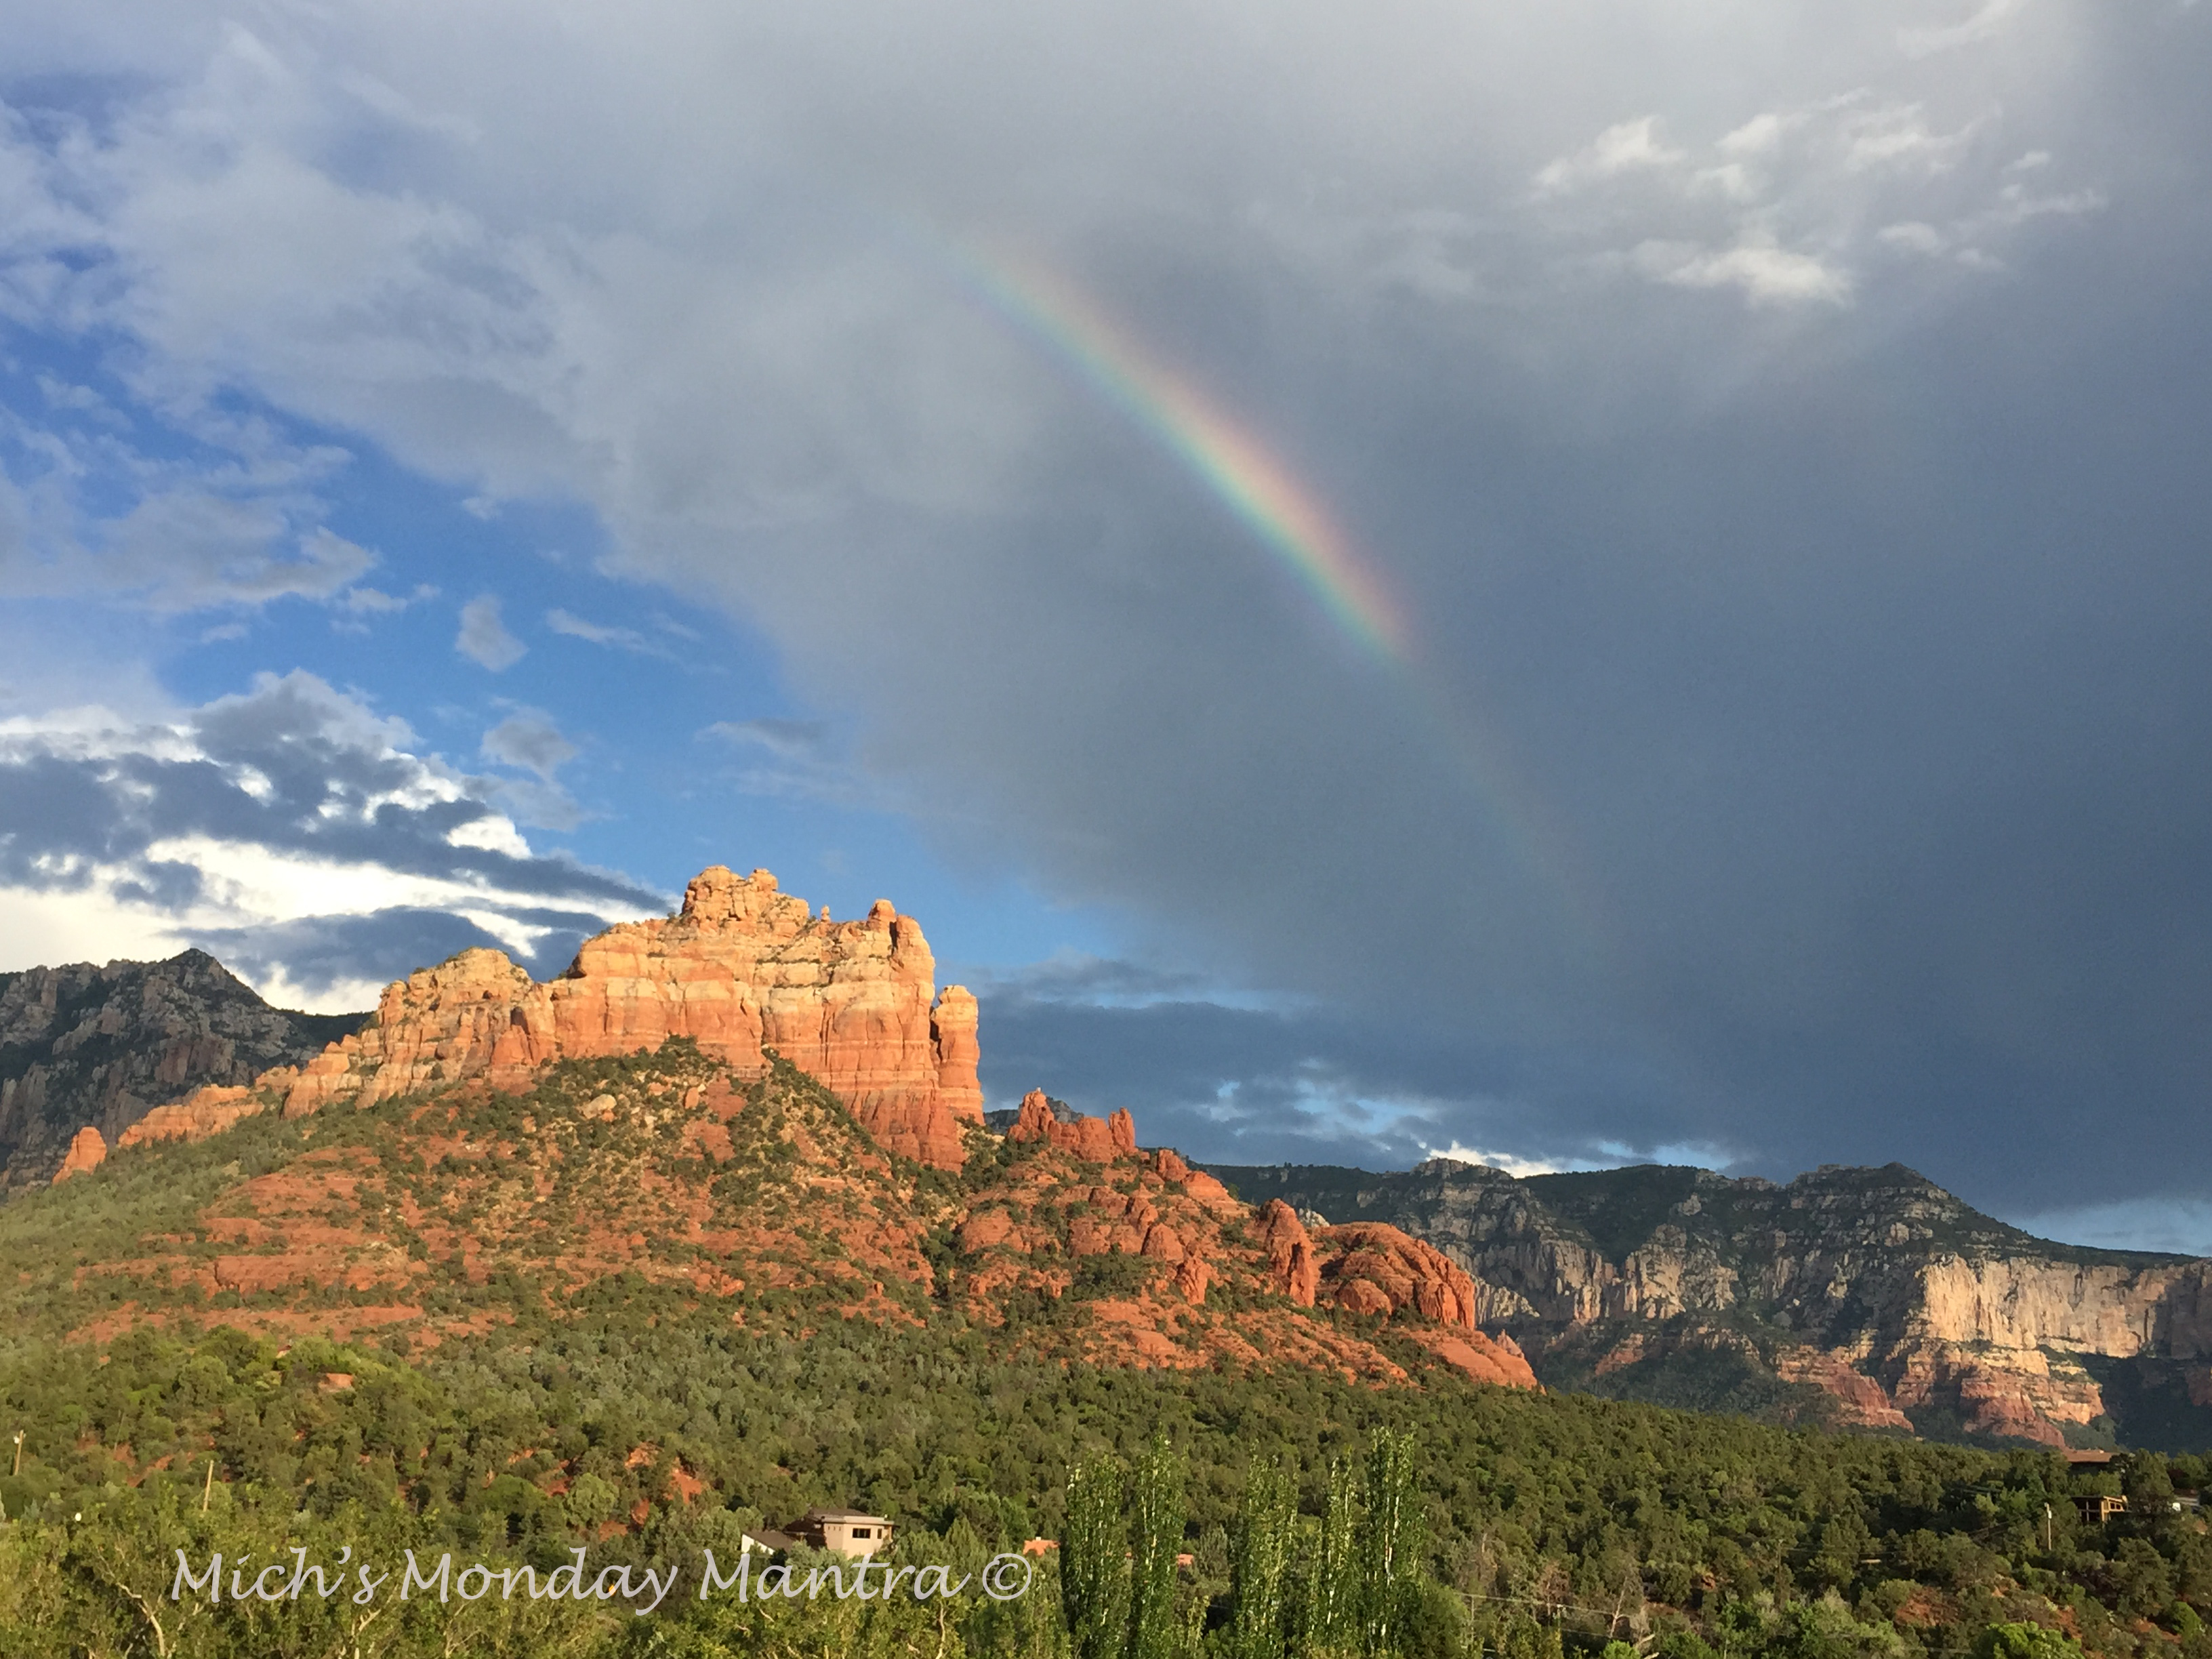 Foto Friday- Rainbows In The Sky